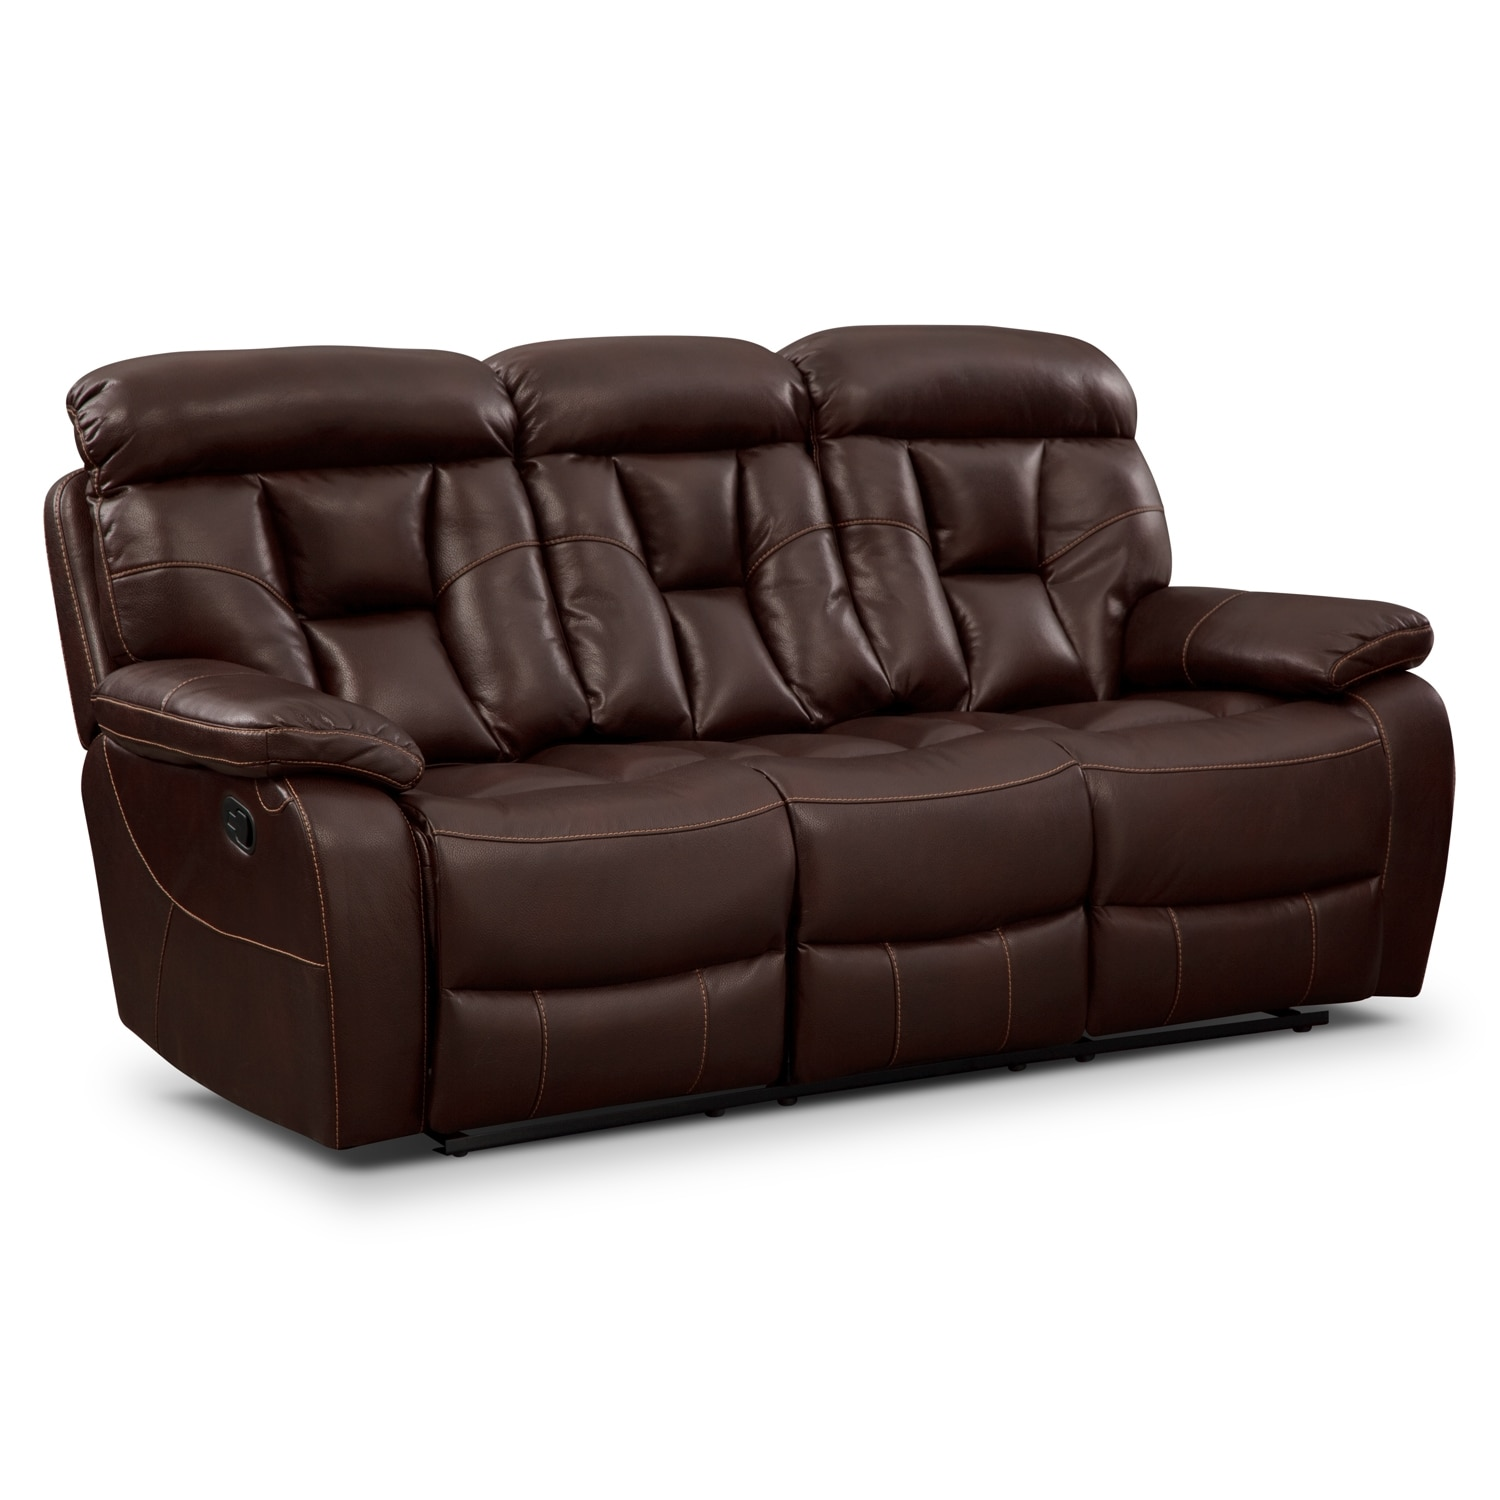 Dakota Reclining Sofa Value City Furniture